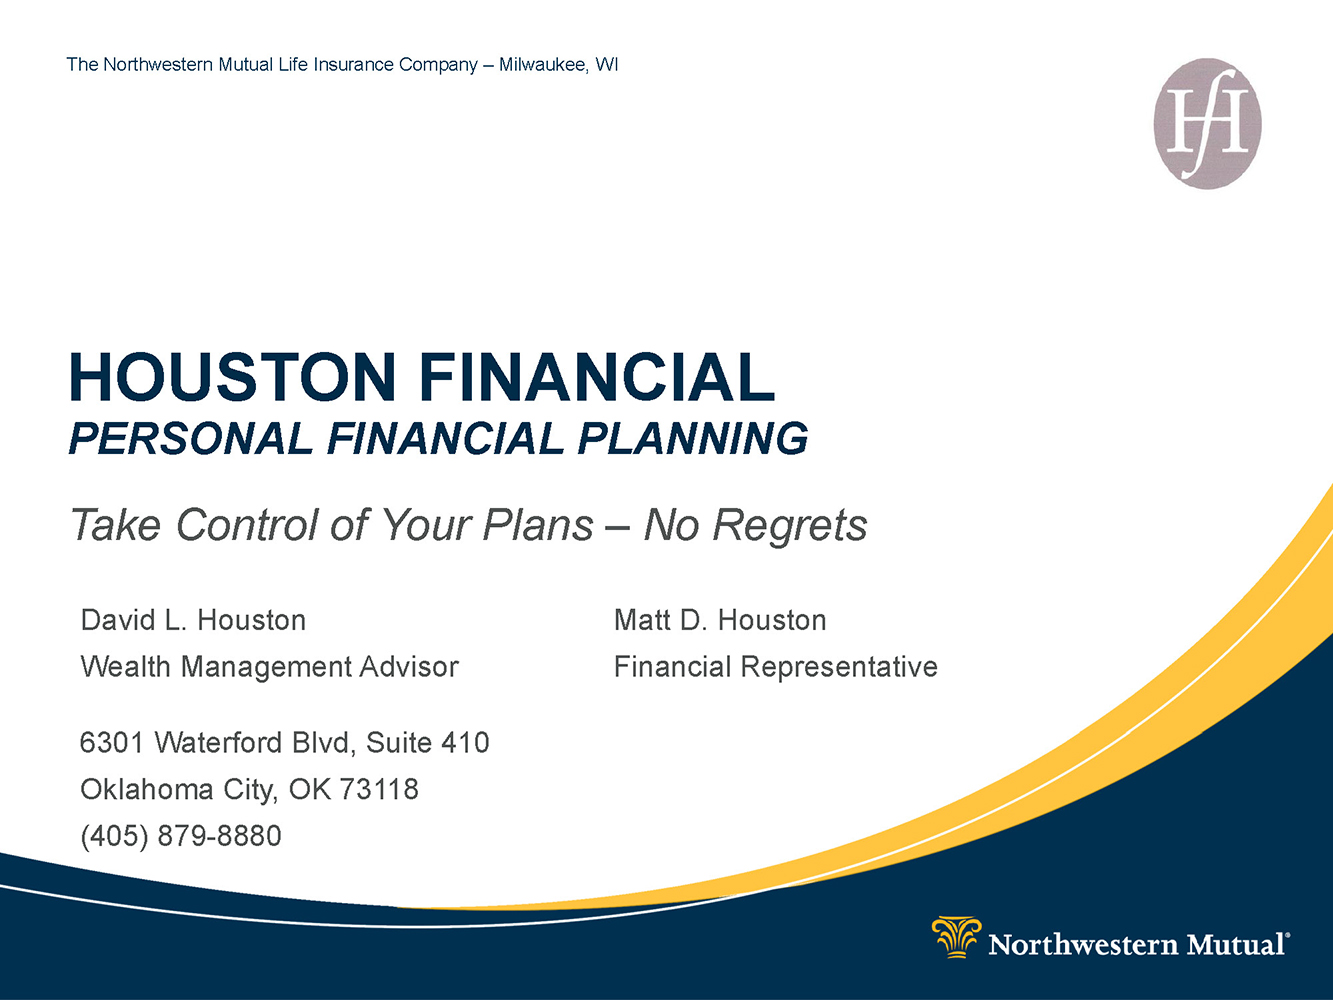 Houston Financial Value Proposition